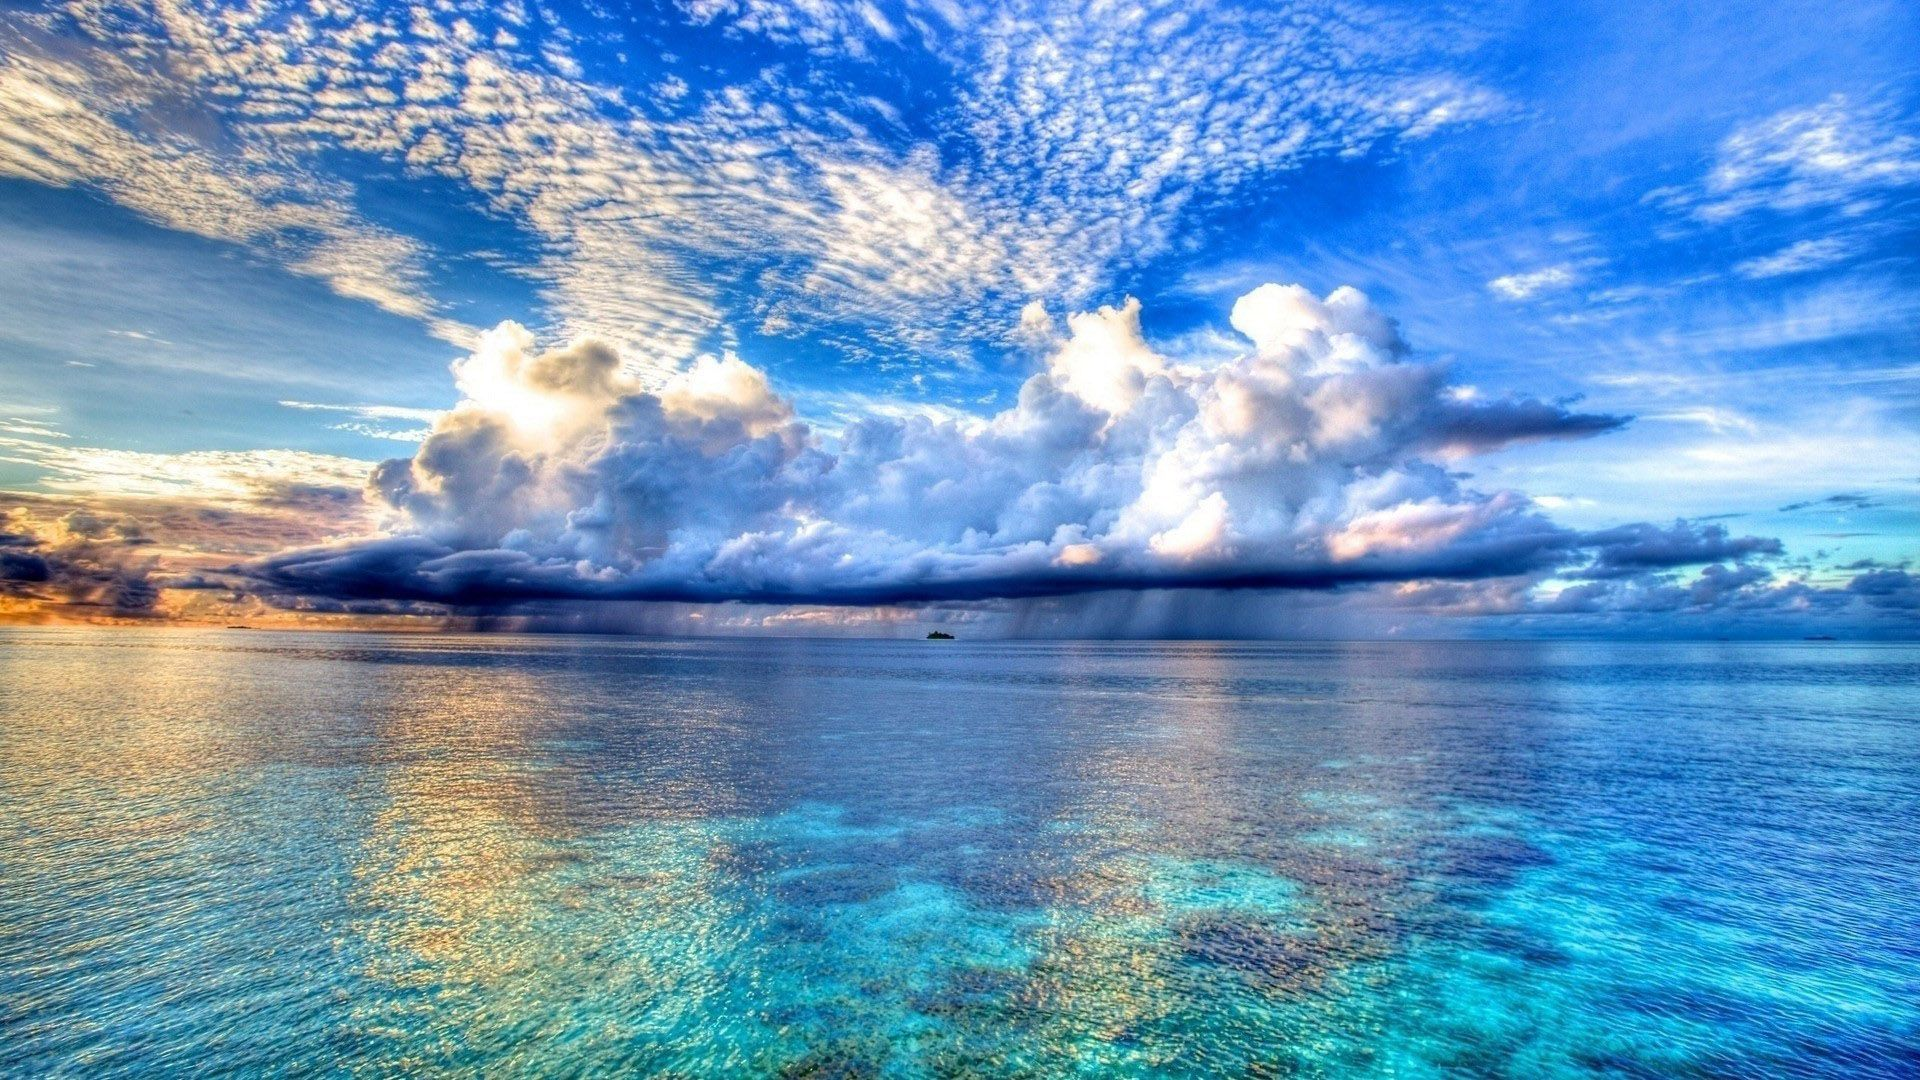 beautiful sky and beach wallpaper download #5538 wallpaper | high